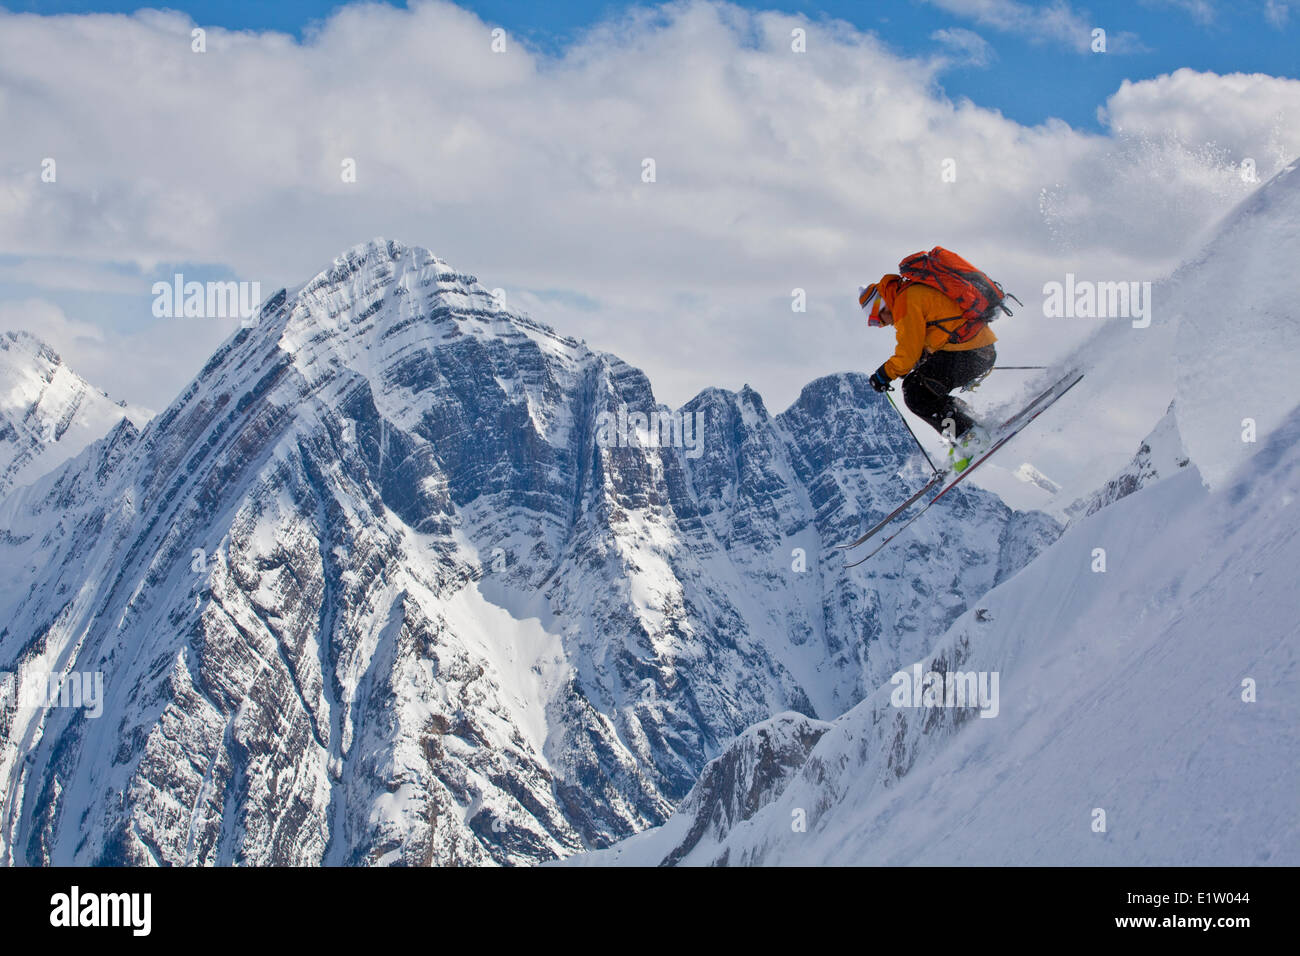 A male backcountry skier airs a pillow with classic canadian rockies scenery as a backdrop. Icefall Lodge, Golden, - Stock Image